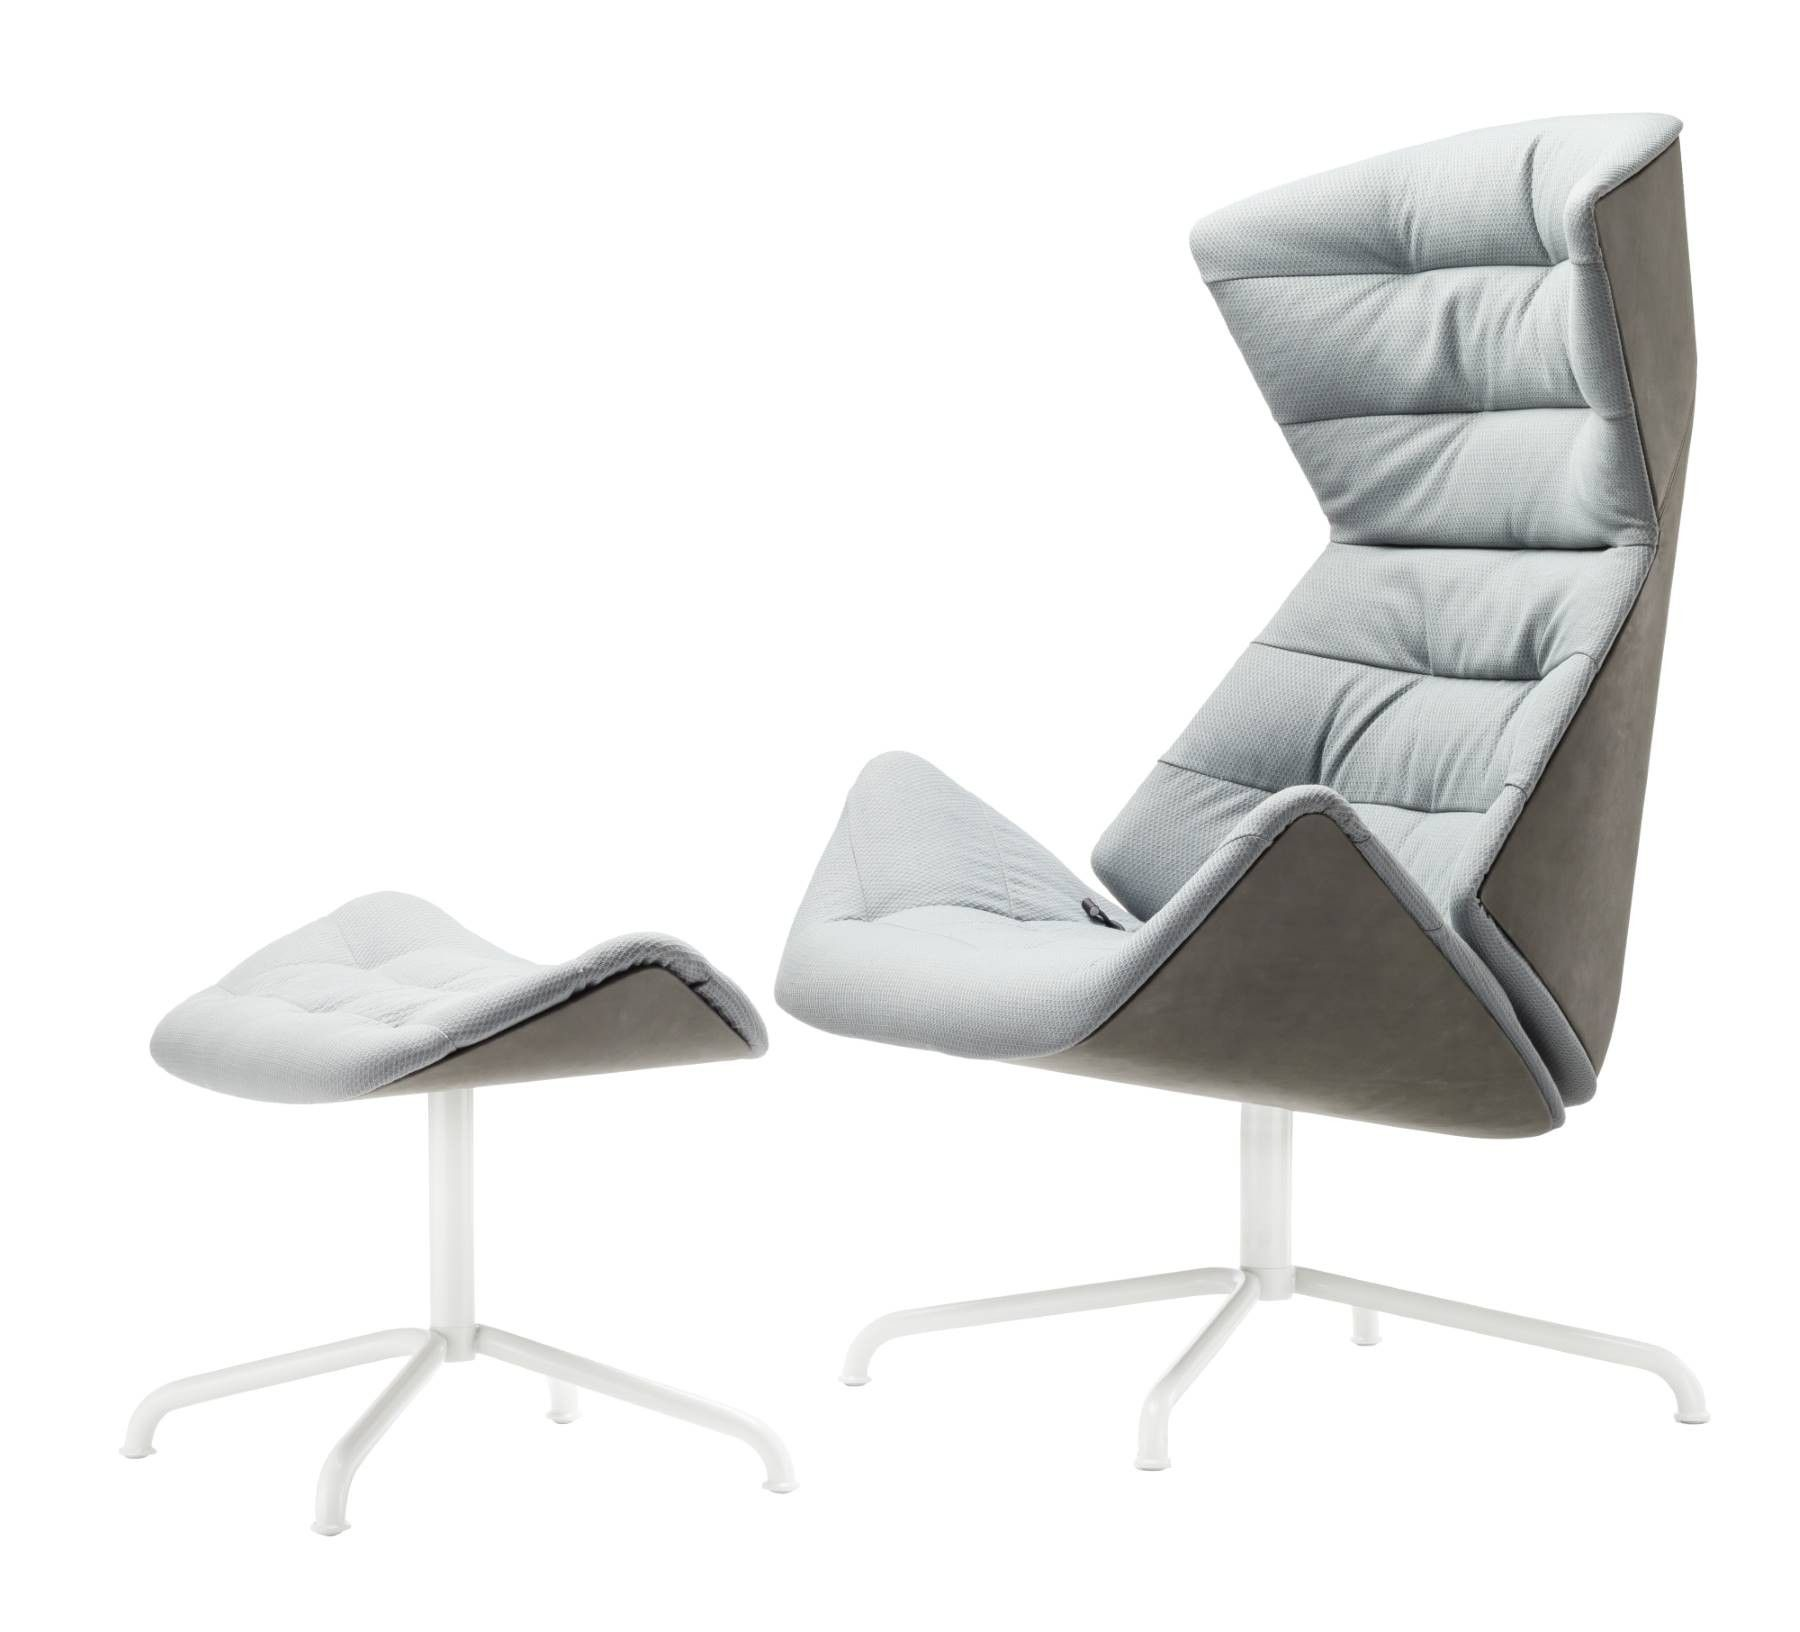 Lounge Sessel Thonet 808 Lounge Armchair Thonet Designed By Formstelle For 3 588 00